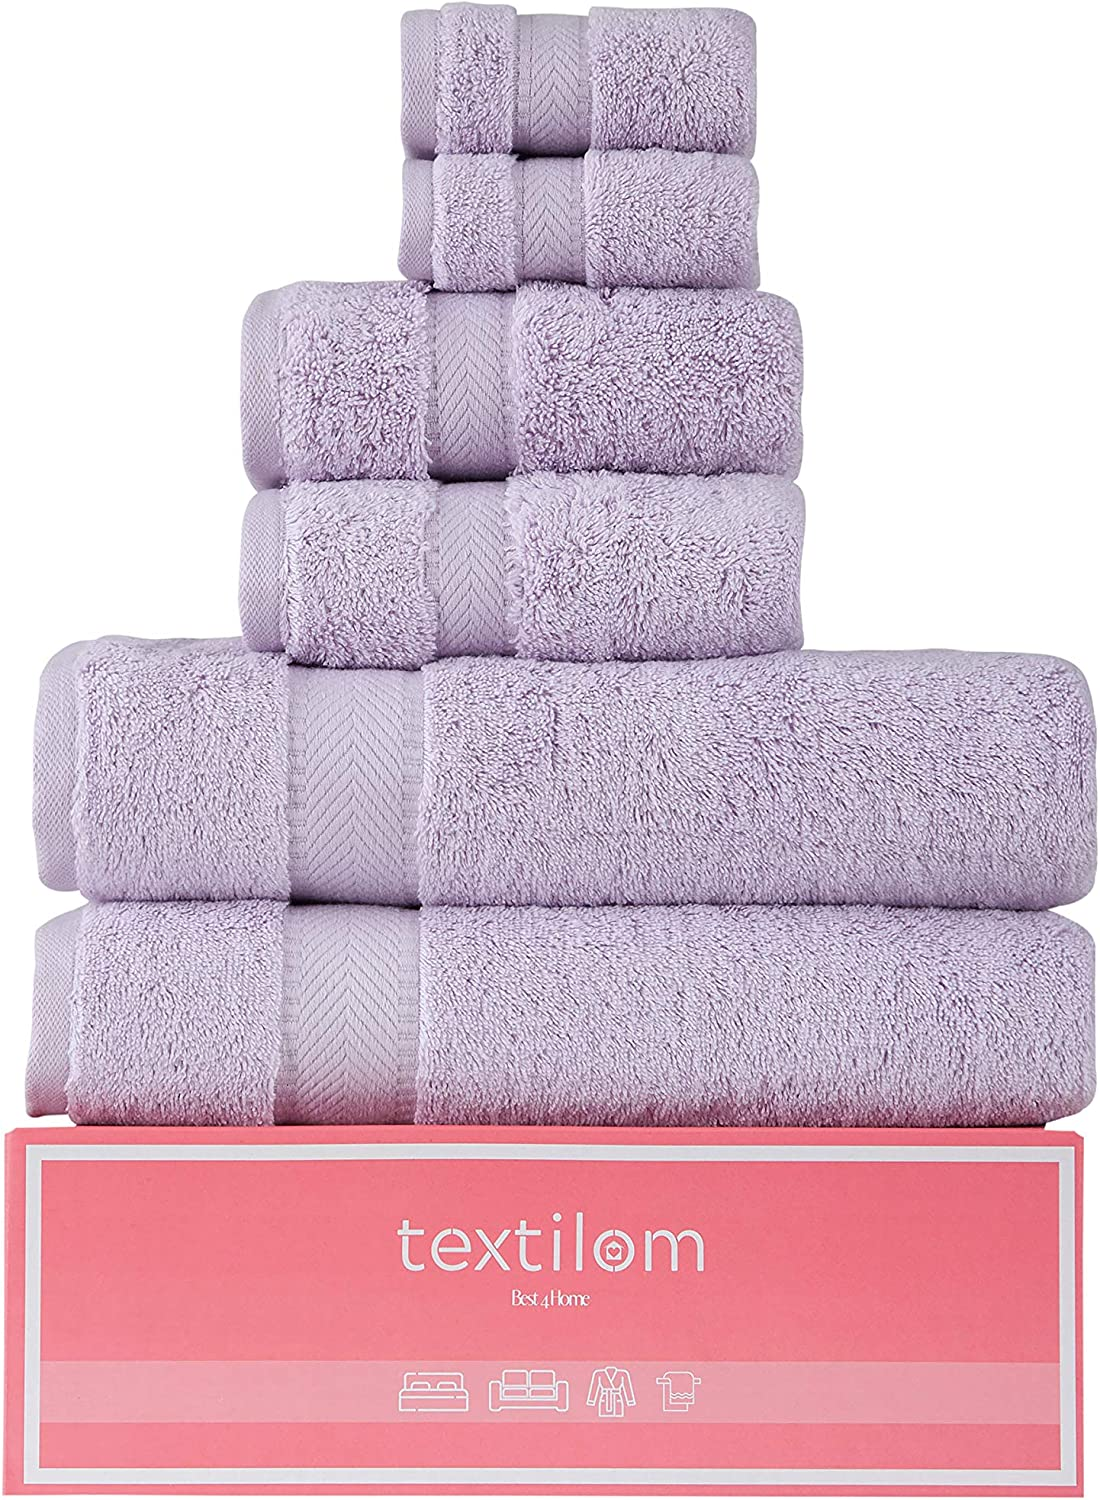 Textilom 100% Turkish Genuine Cotton 6 Piece Towel Set, Super Soft & Highly Absorbent & Quick Dry ( 2 Bath Towels, 2 Hand Towels, 2 Washcloths )- Lilac: Kitchen & Dining